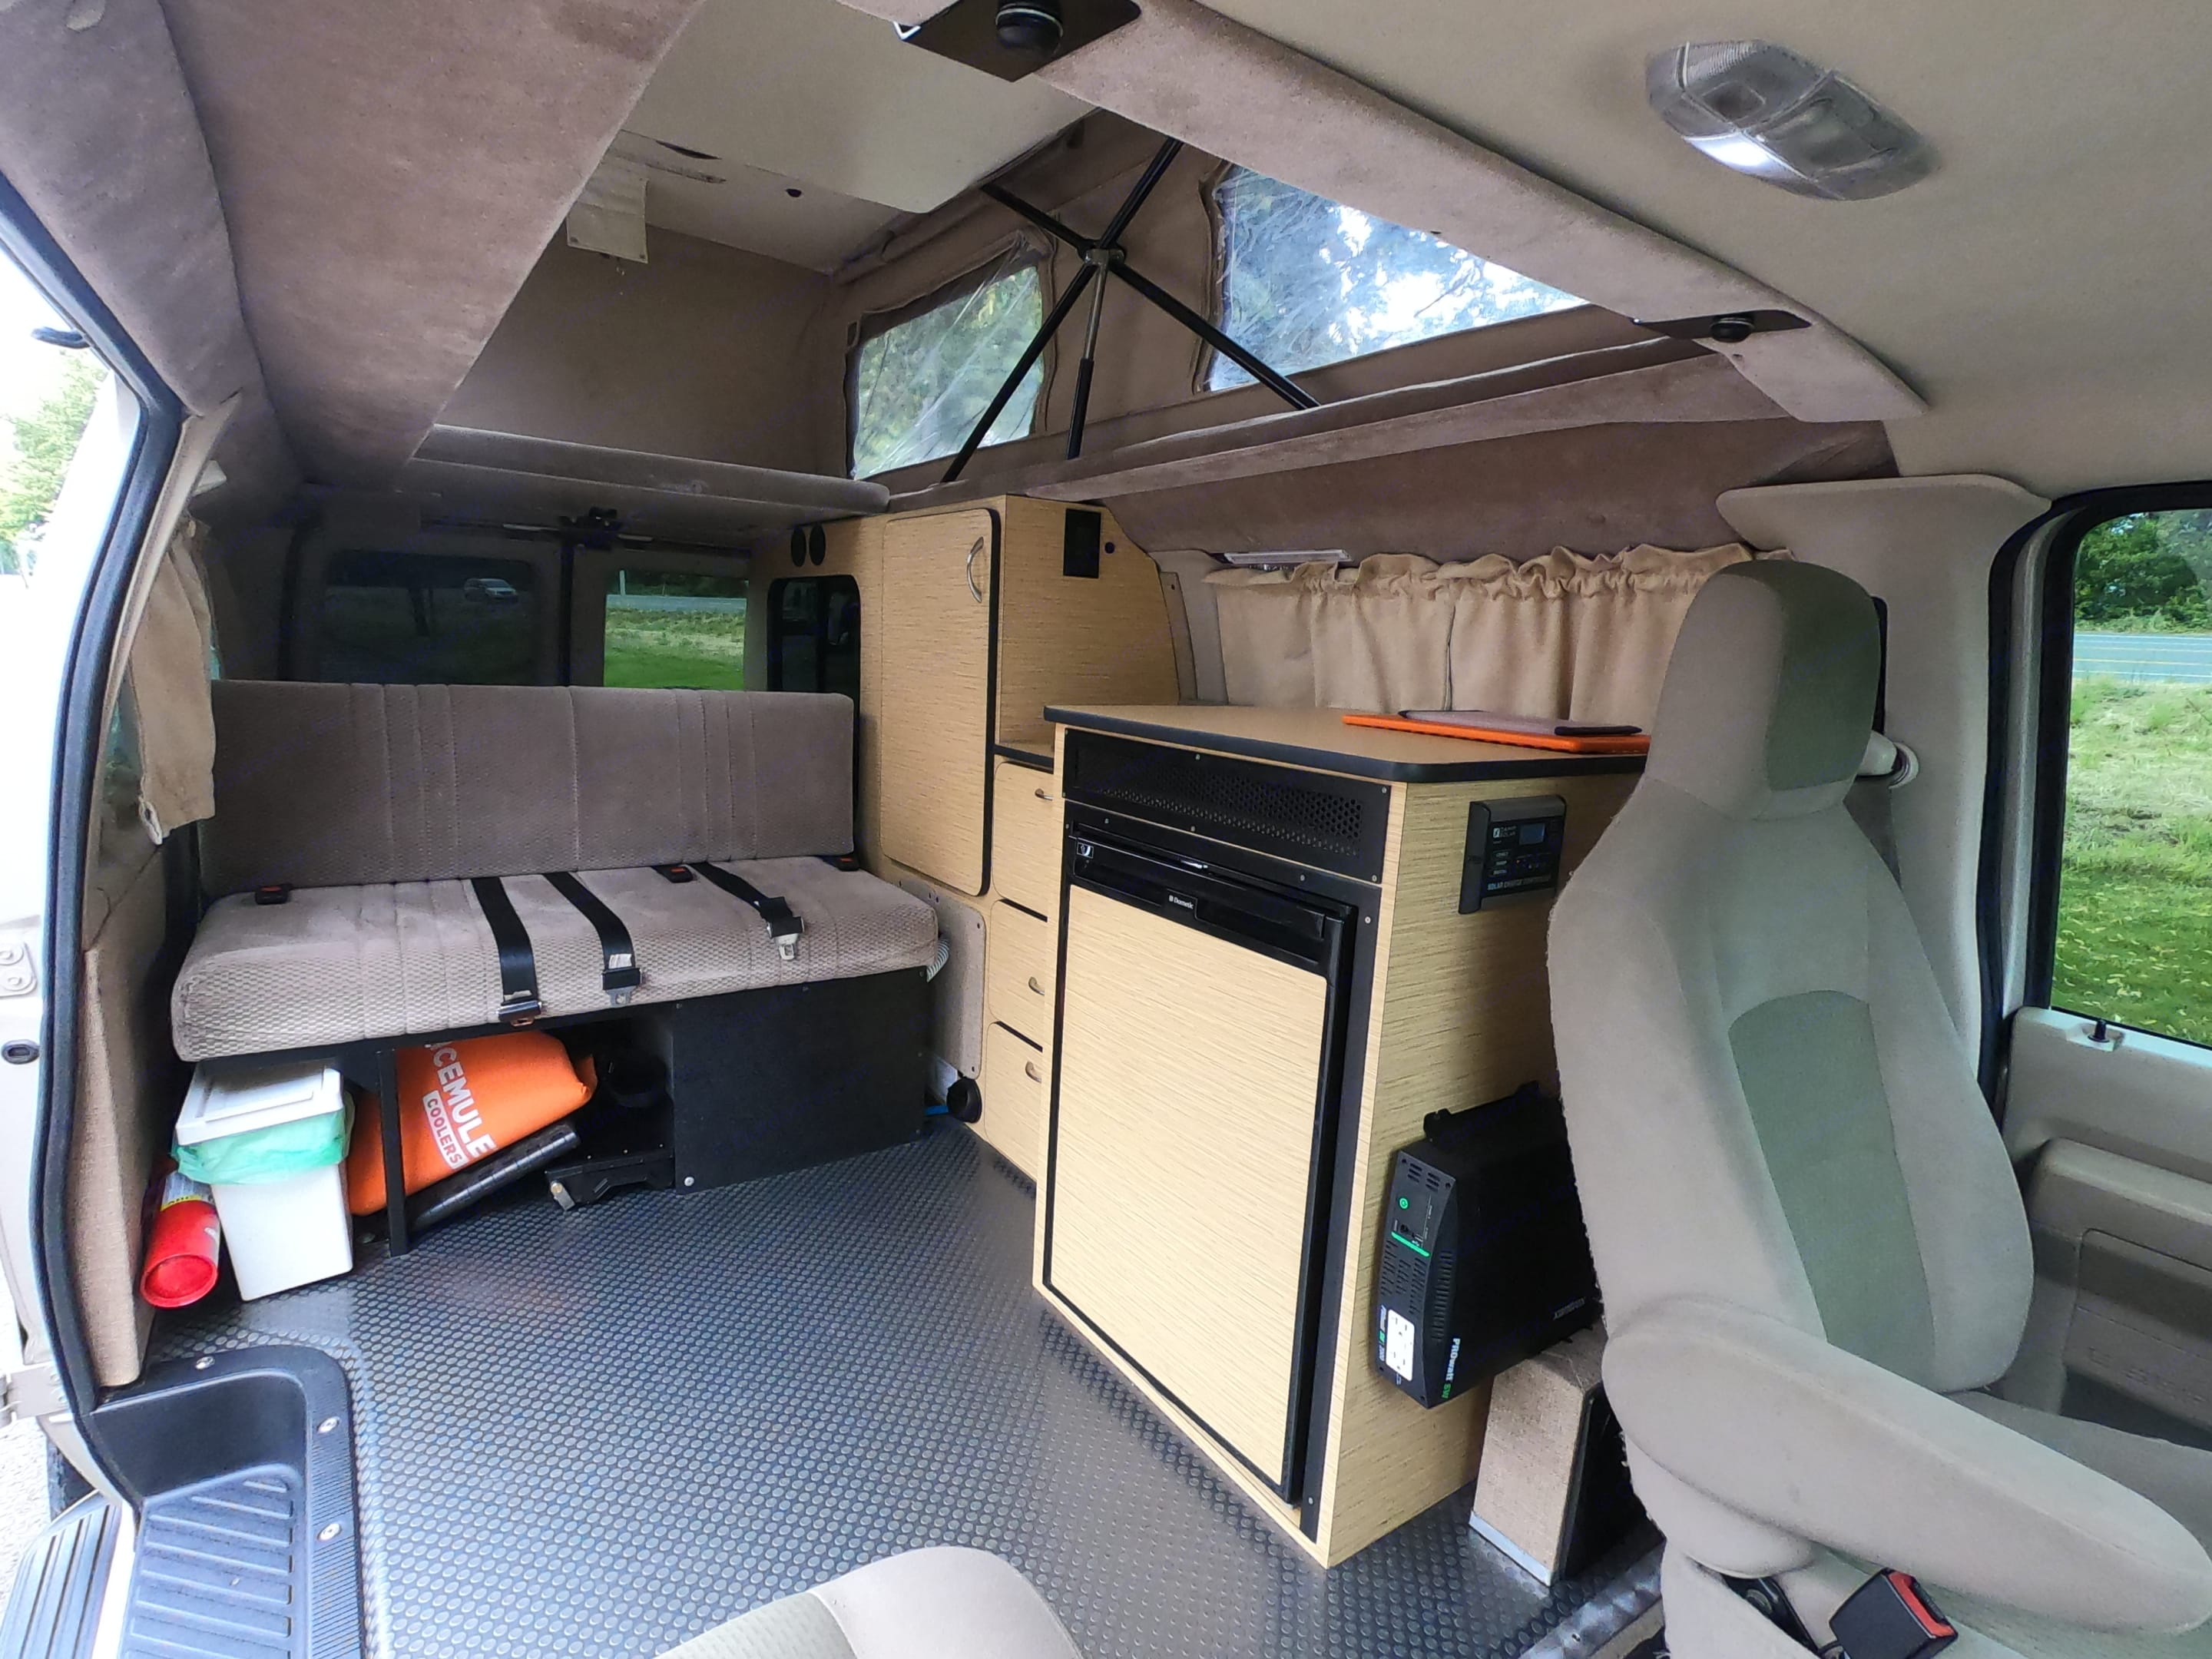 3 seat belts on bench seat that folds out to a bed, Pop top has a bed. Kitchen has sink and fridge. Comes with portable cook stove.. Ford Econoline 2009